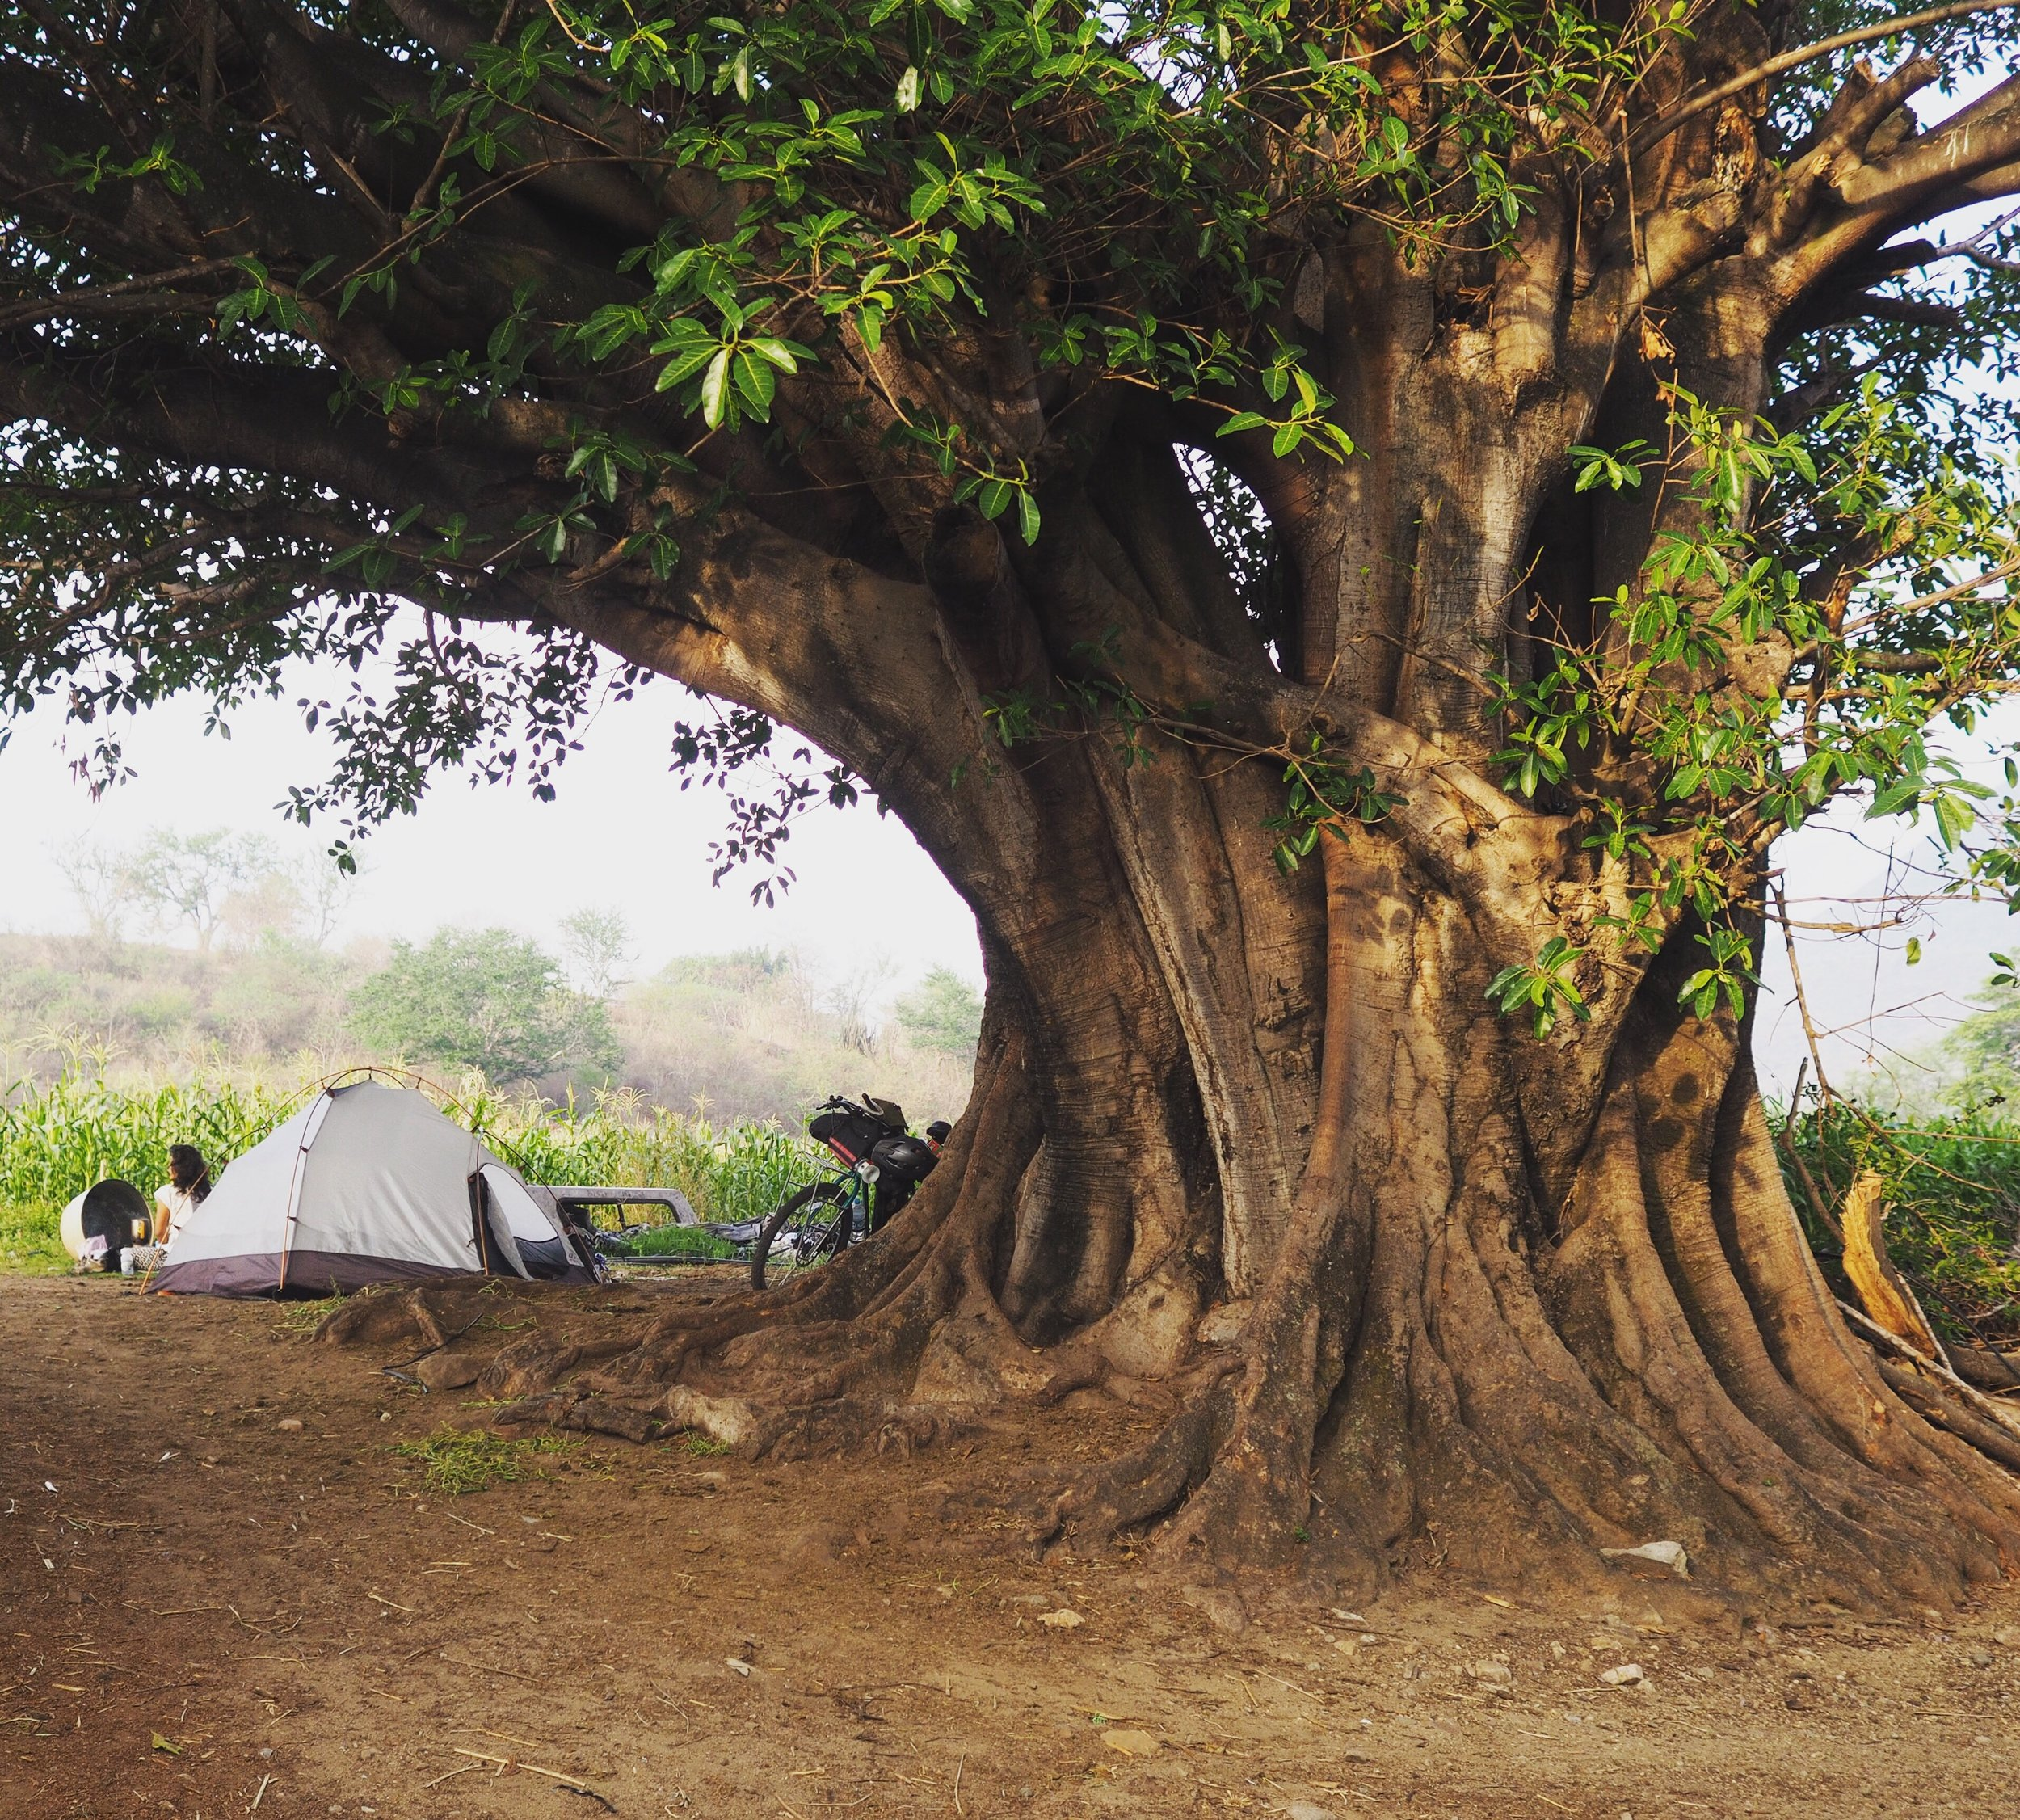 Camping under an amate tree